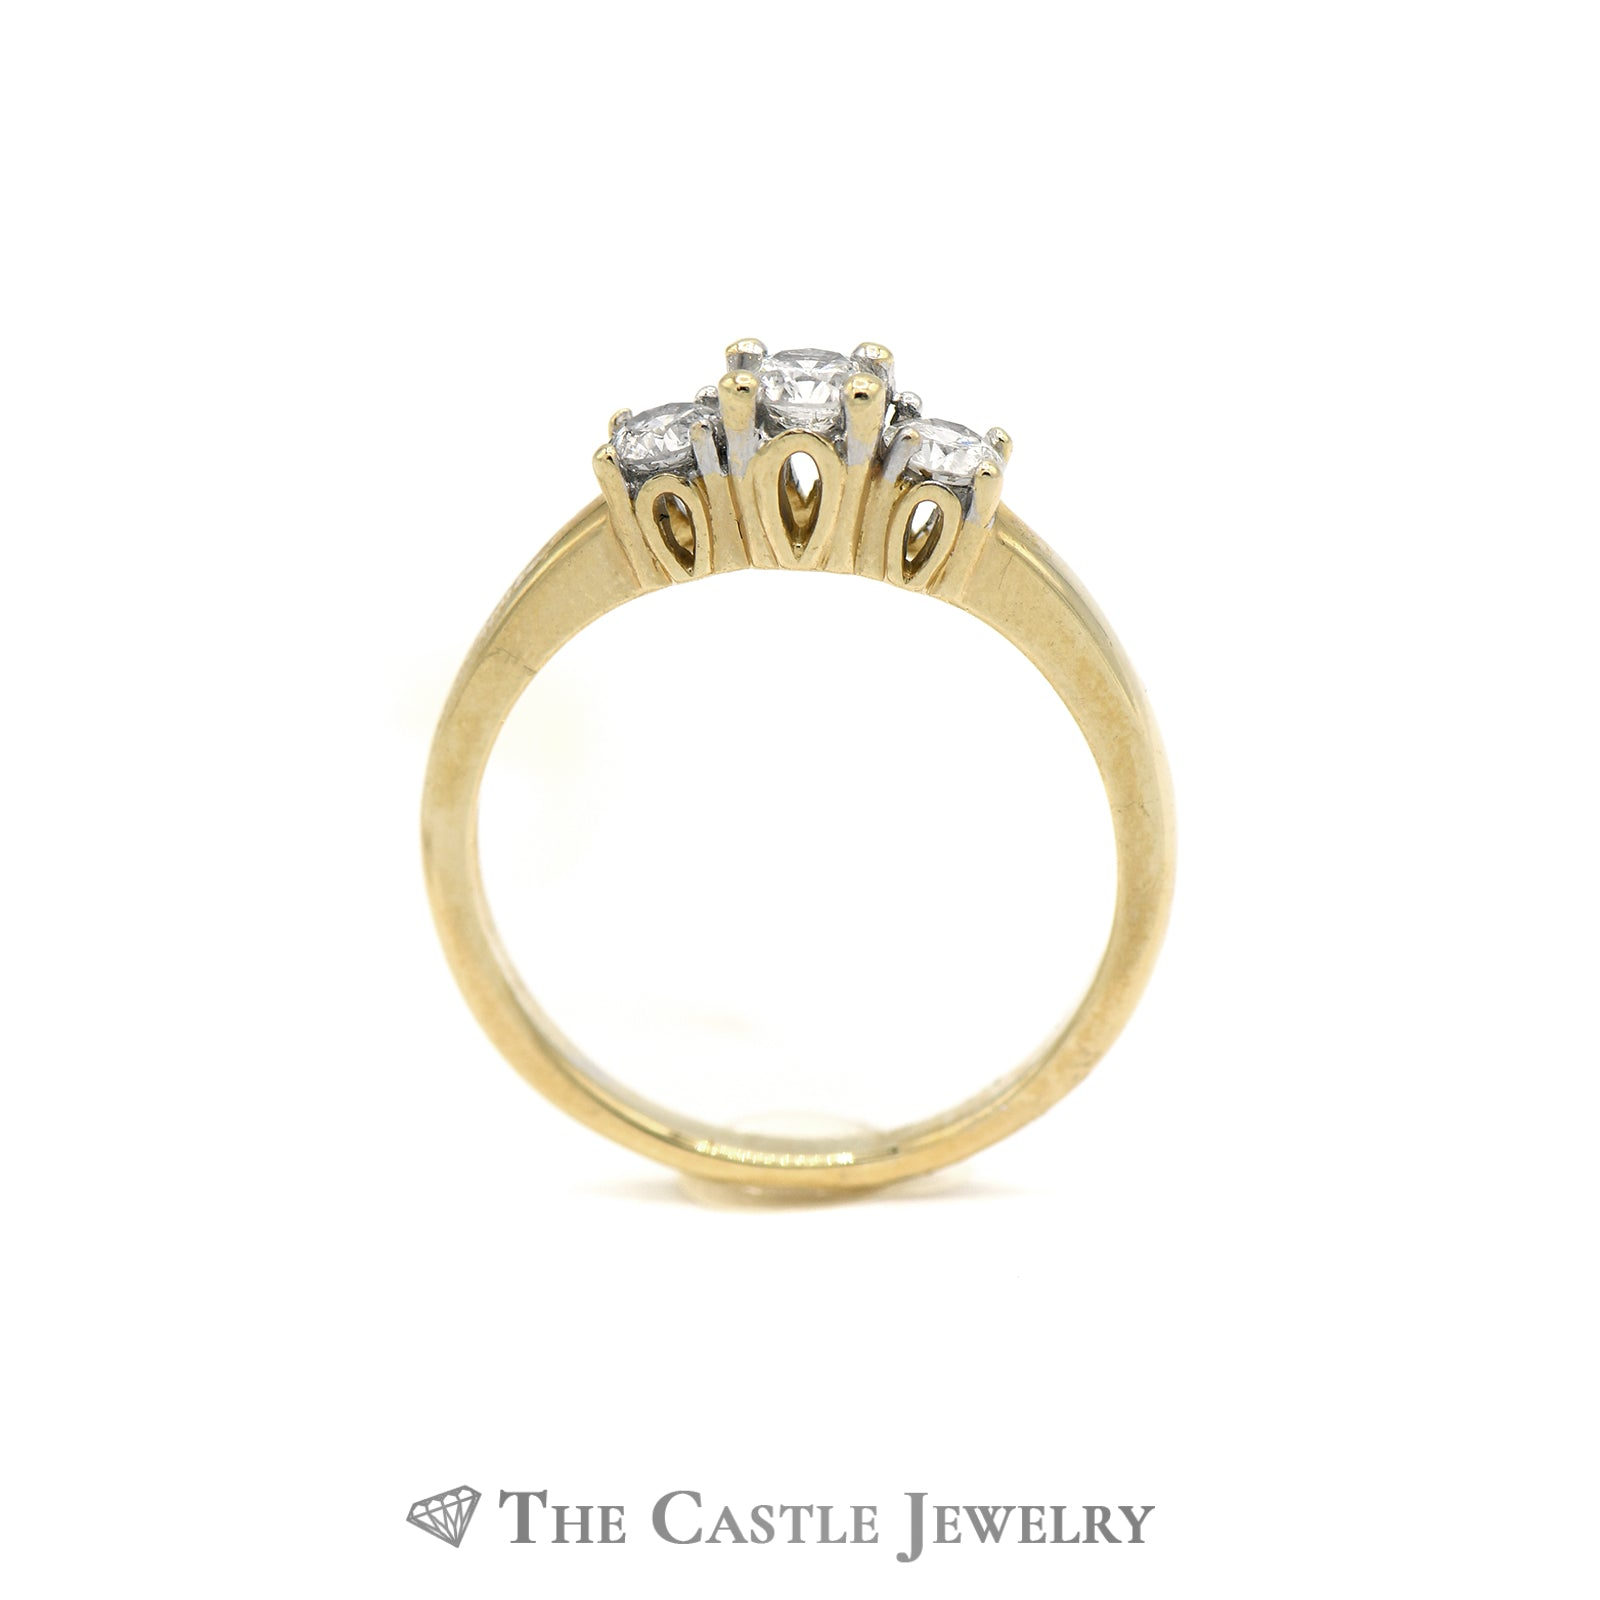 .50CTTW DeBeers Style 14KT Yellow Gold Diamond Ring-1